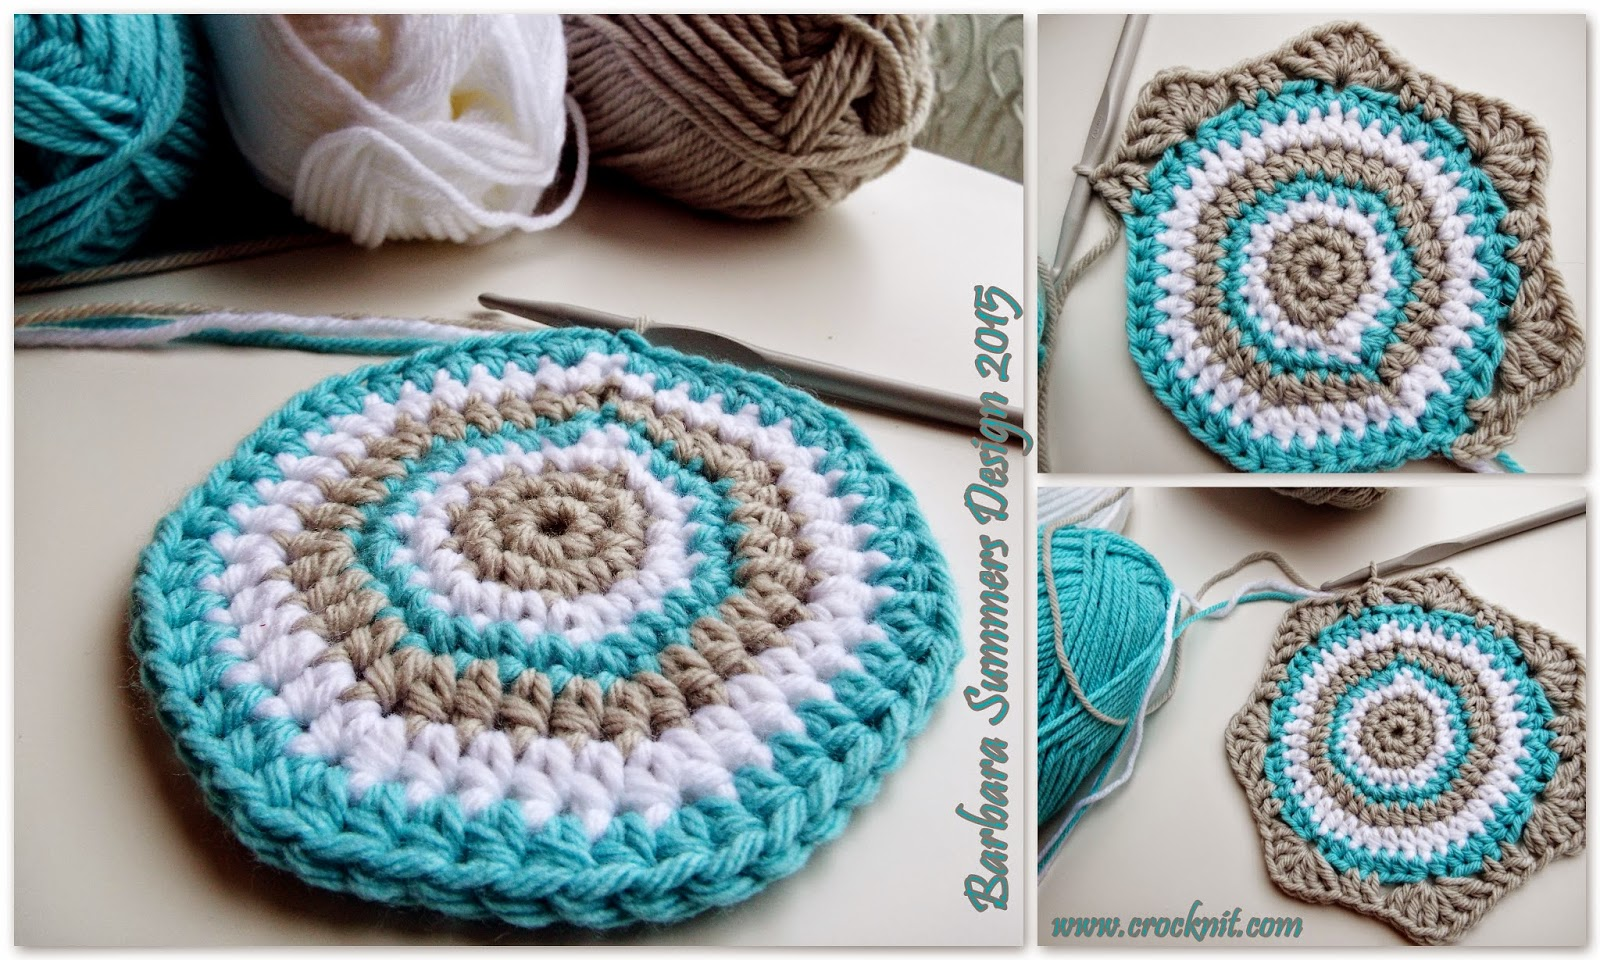 String Bag Crochet Pattern : Crochet Patterns For Bags Drawstring Microcknit creations: cindy ...